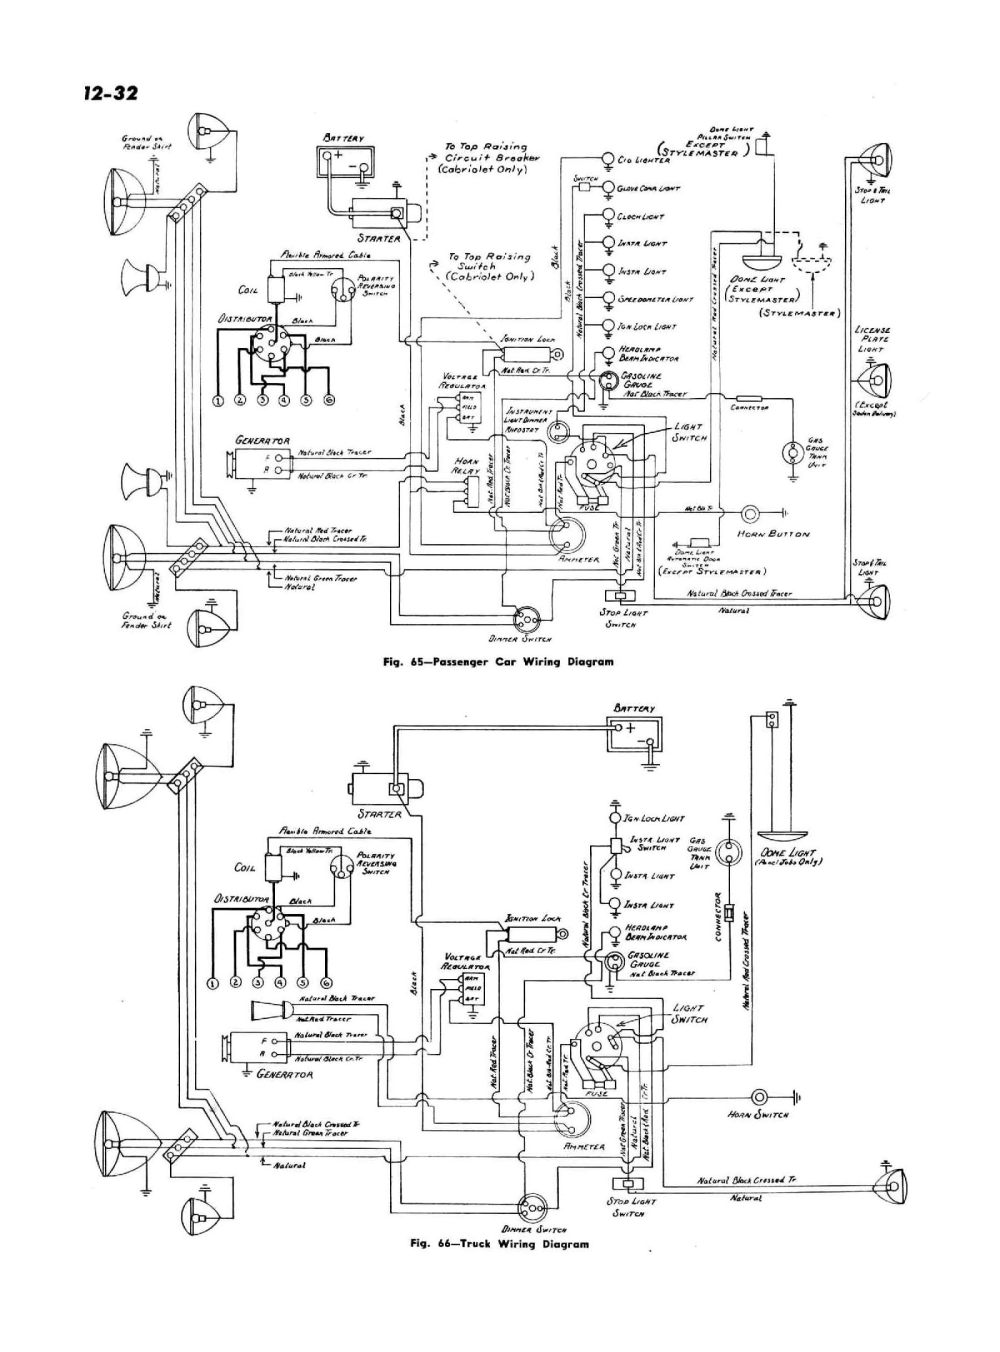 medium resolution of 1958 chevy truck wiring diagram wiring diagram user 1958 chevrolet headlight switch wiring diagram